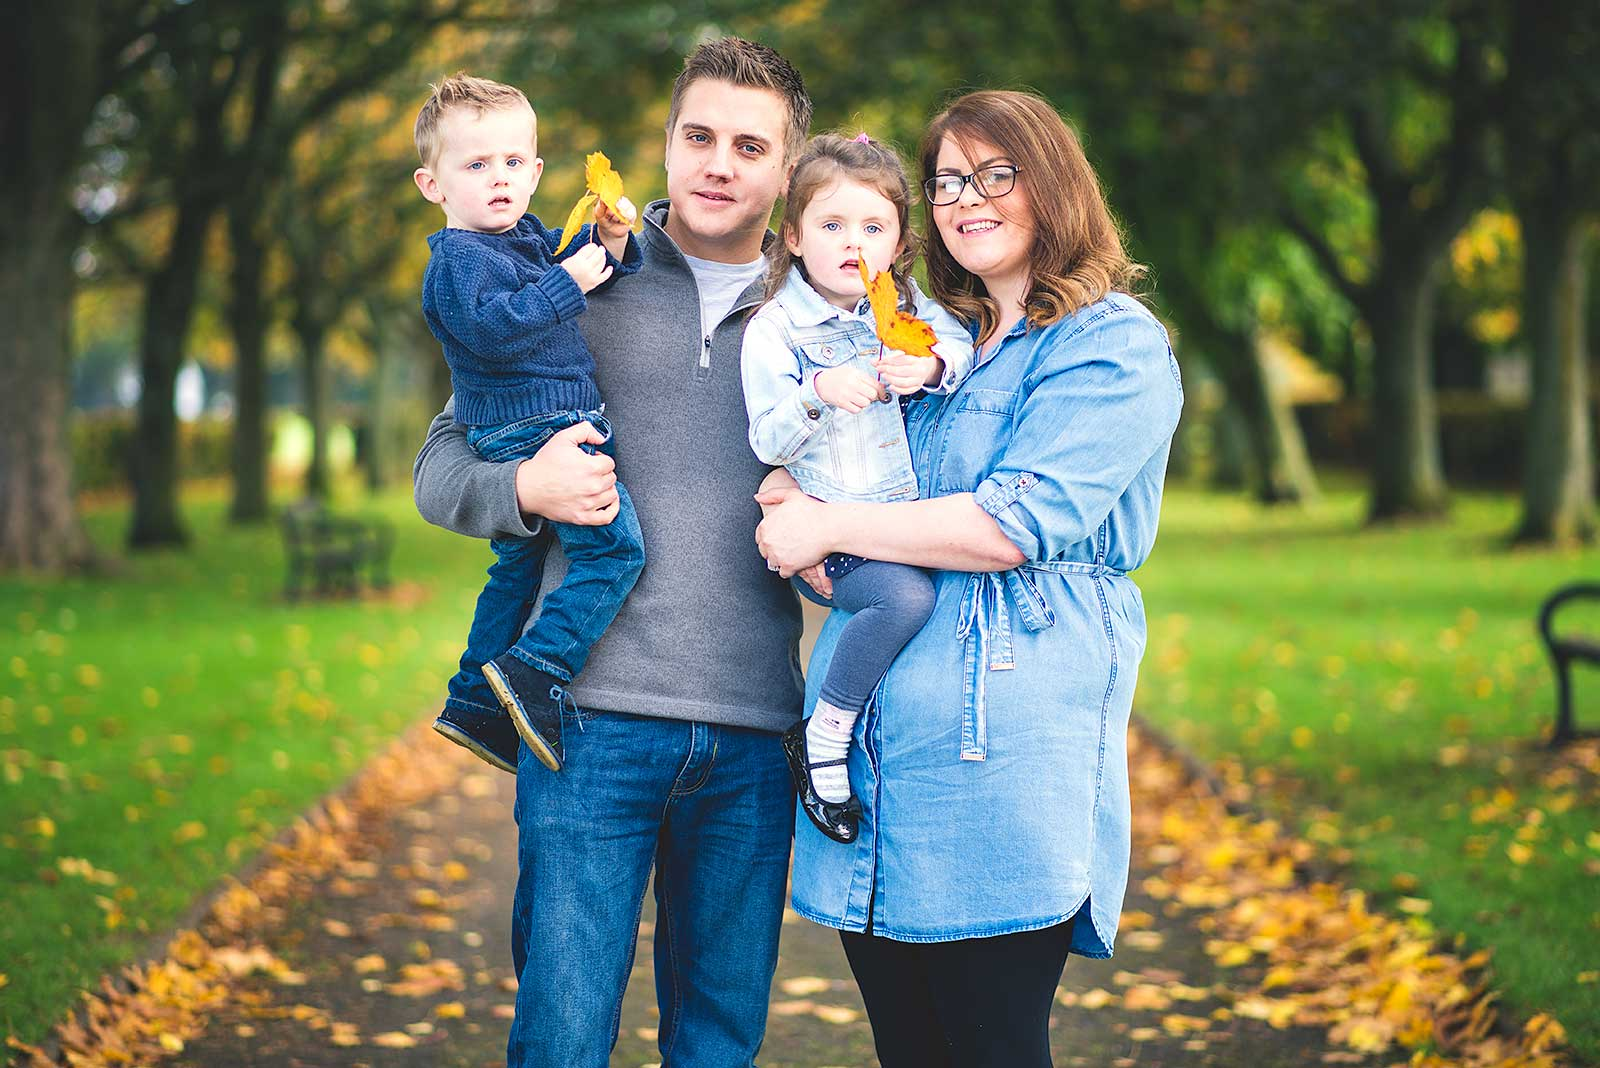 JawDesigns - Hungerford Family Portrait Photography - Newbury Berkshire